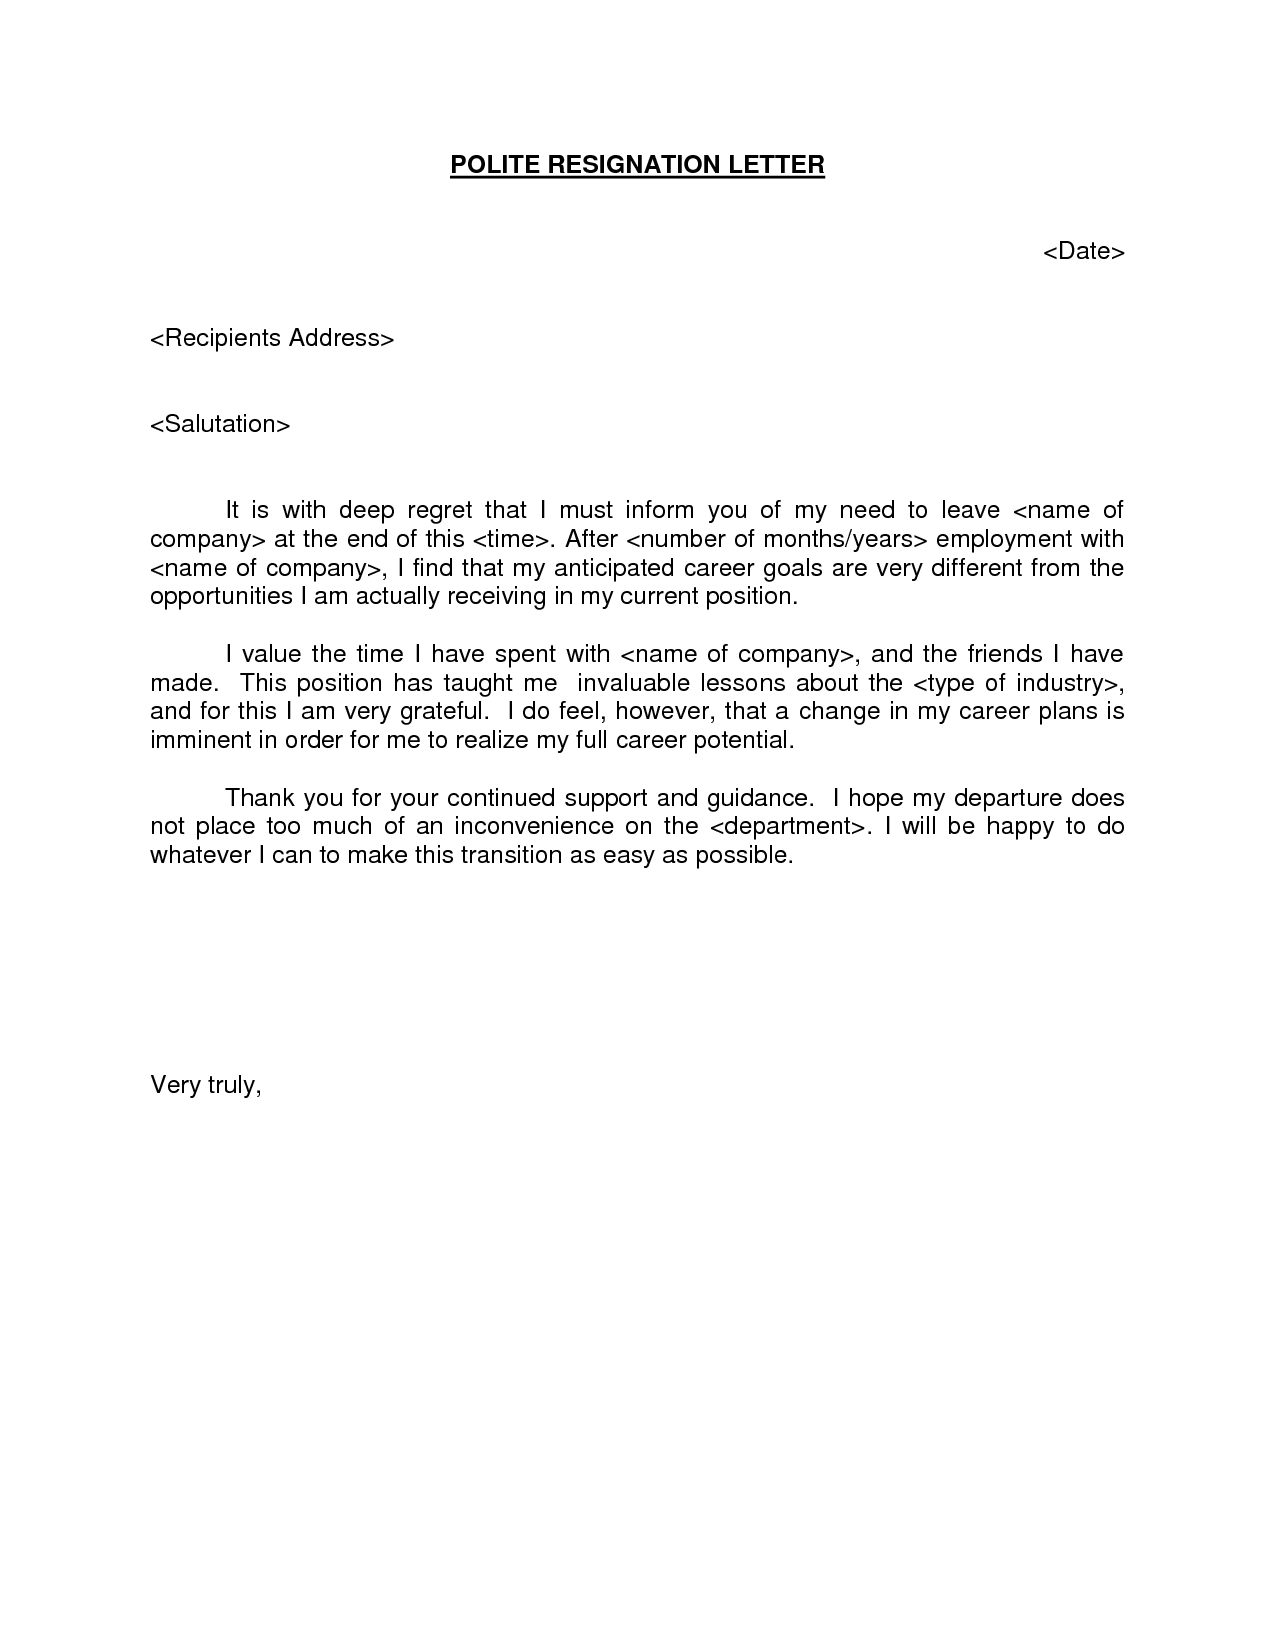 Polite resignation letter bestdealformoneywriting a letter of polite resignation letter bestdealformoneywriting a letter of resignation email letter sample expocarfo Image collections